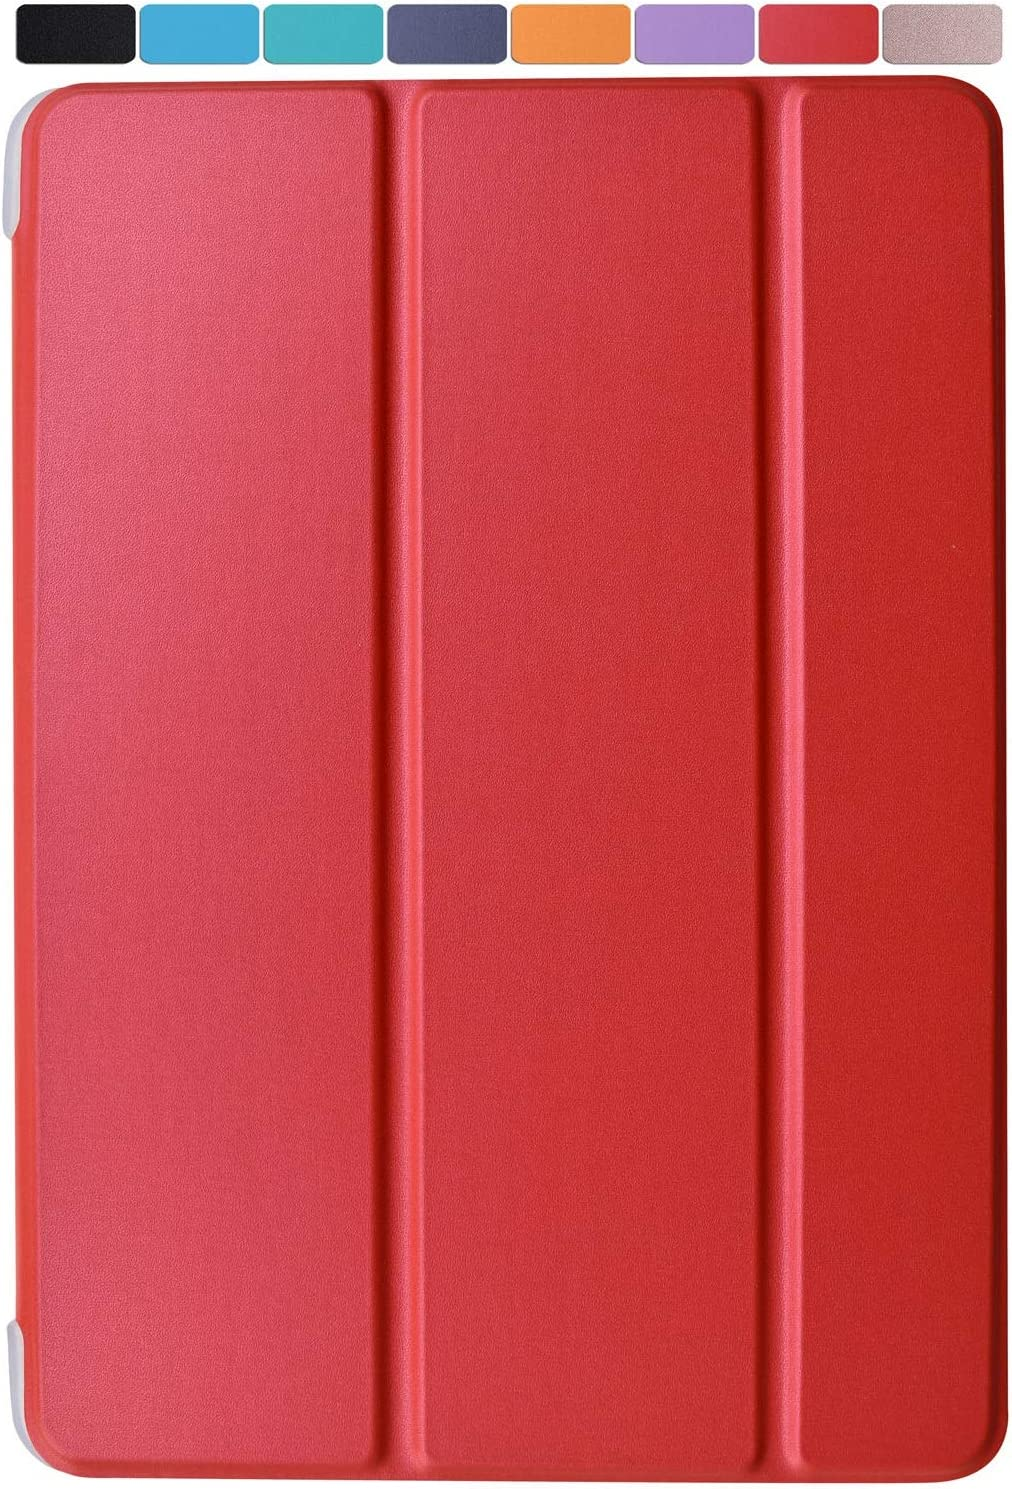 """DuraSafe Cases for iPad PRO/Air - 10.5"""" MQDX2LL/A MQDT2LL/A MQDW2LL/A MUUL2LL/A MUUK2LL/A MUUJ2LL/A MQDY2LL/A Ultra Slim Energy Saving Case with Adjustable Stand Feature and Sleek Design - Red"""